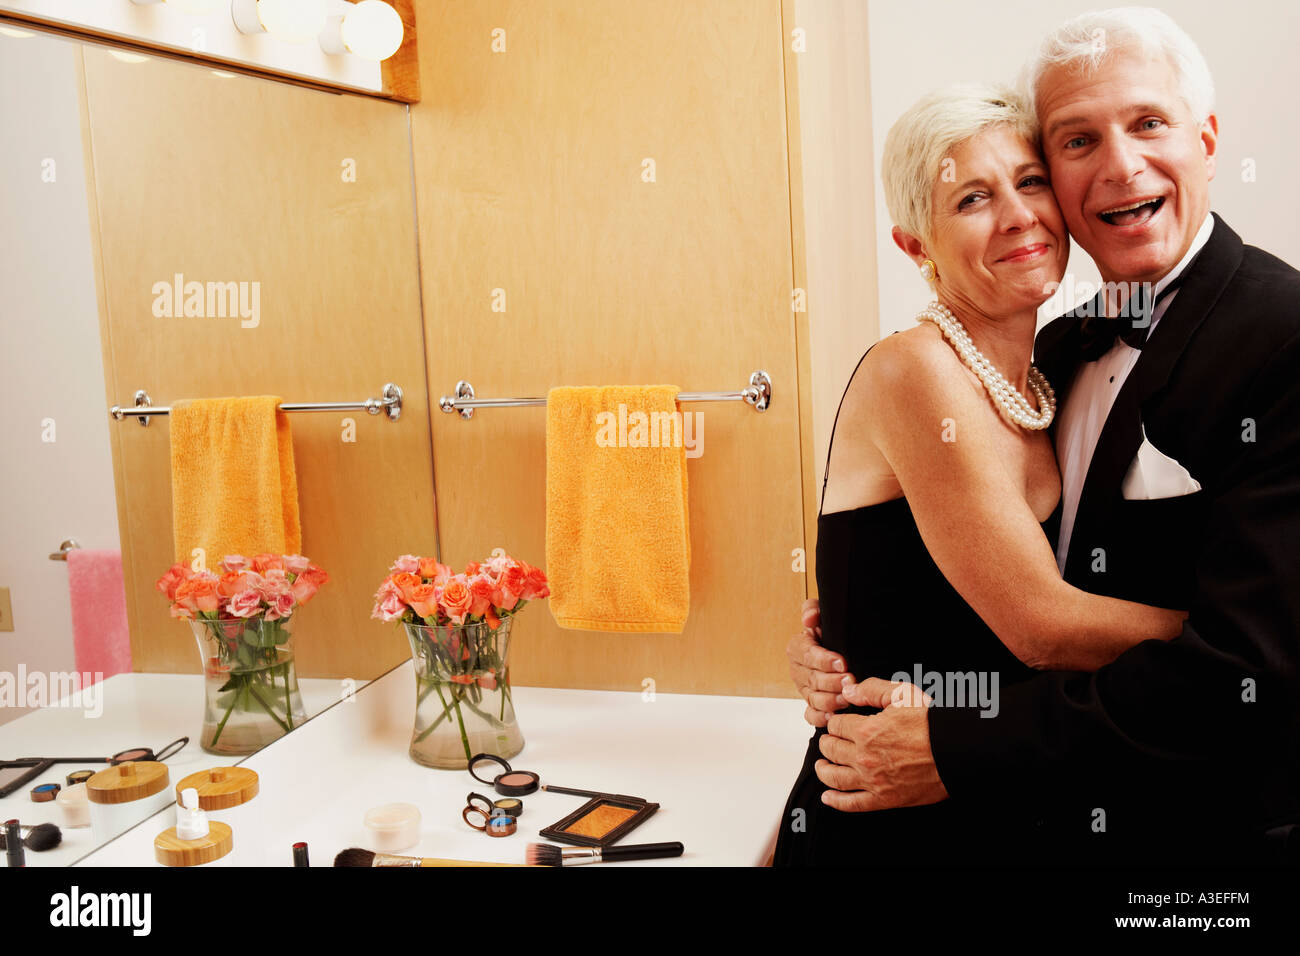 Portrait of a mature man and a senior woman embracing each other in the bathroom Stock Photo